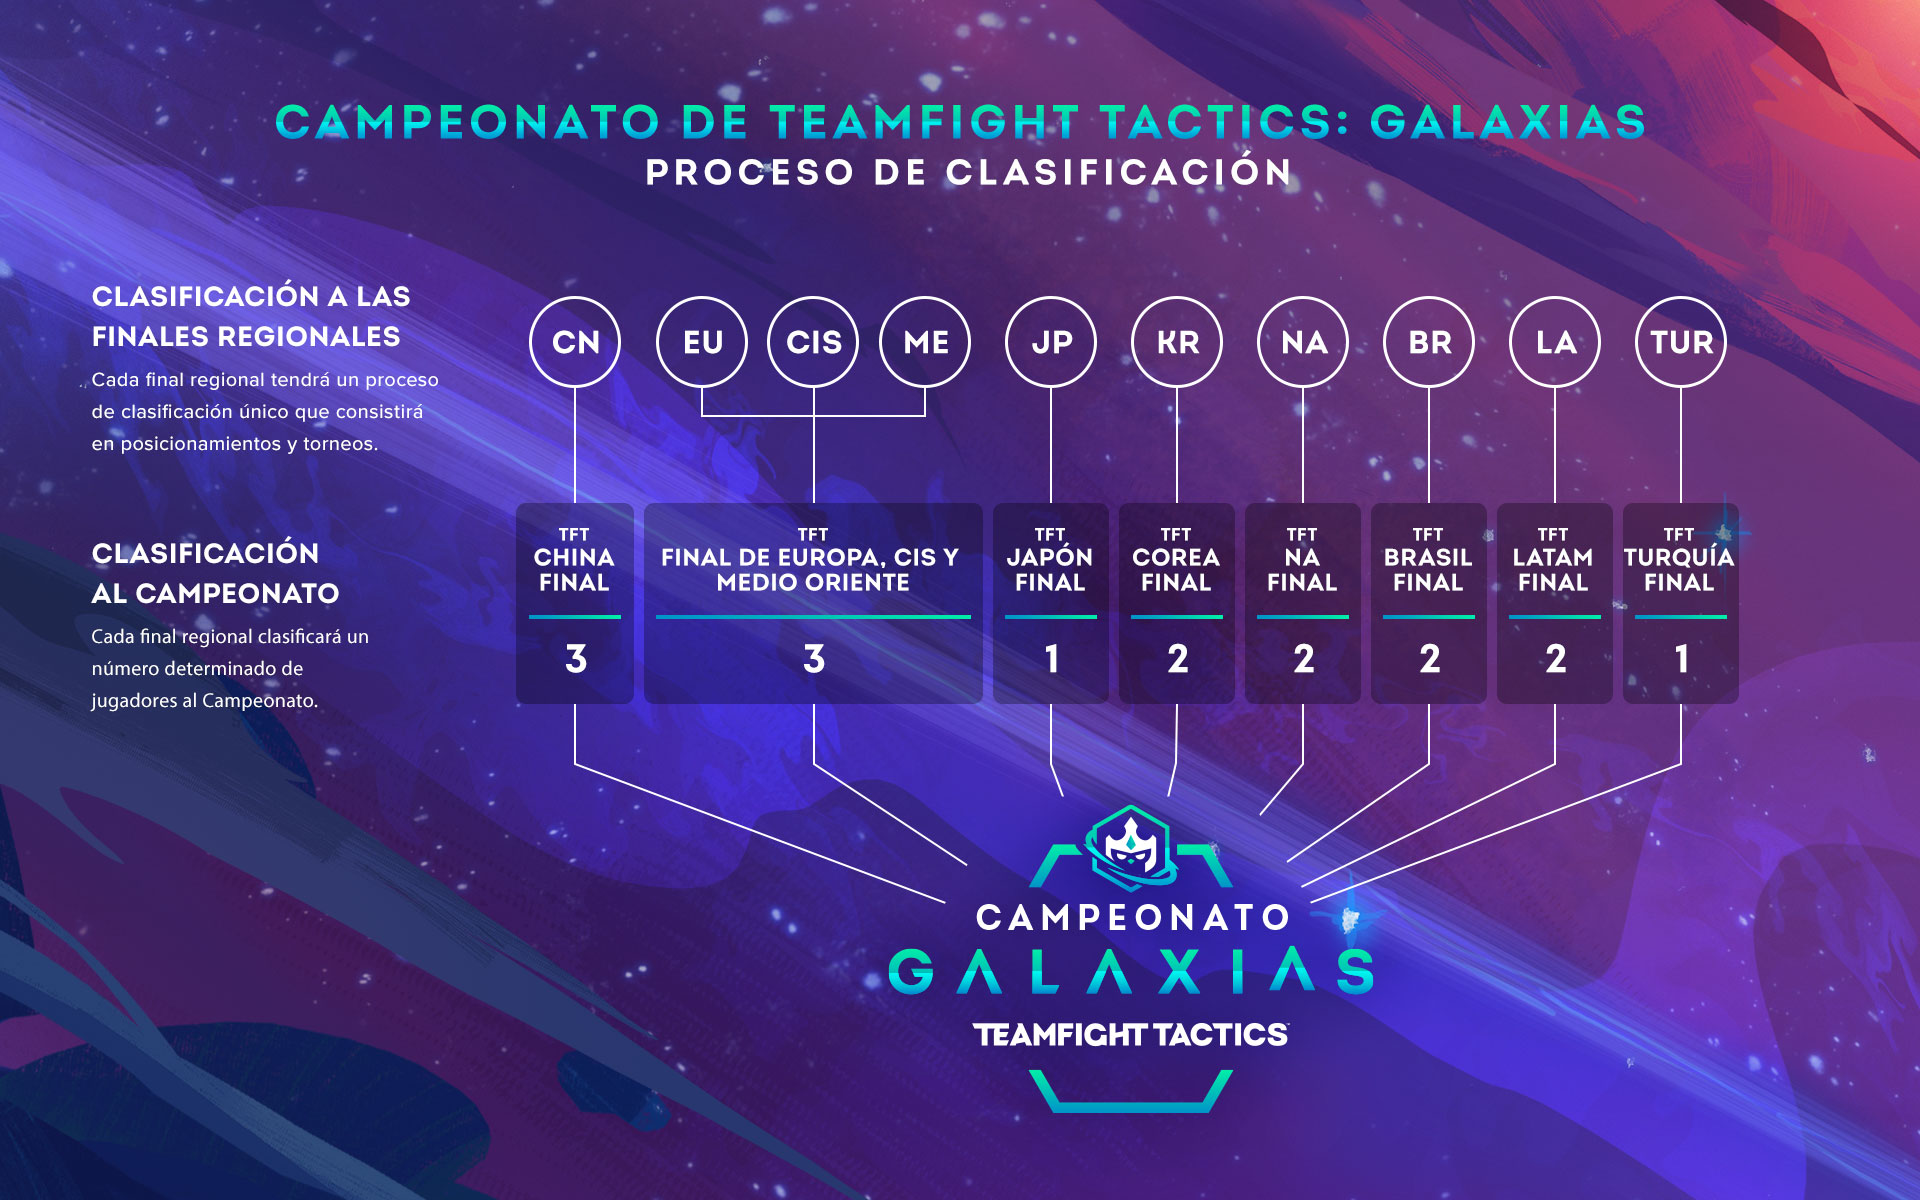 tft-qualificationprocess-graphic-v2_LATAM.jpg